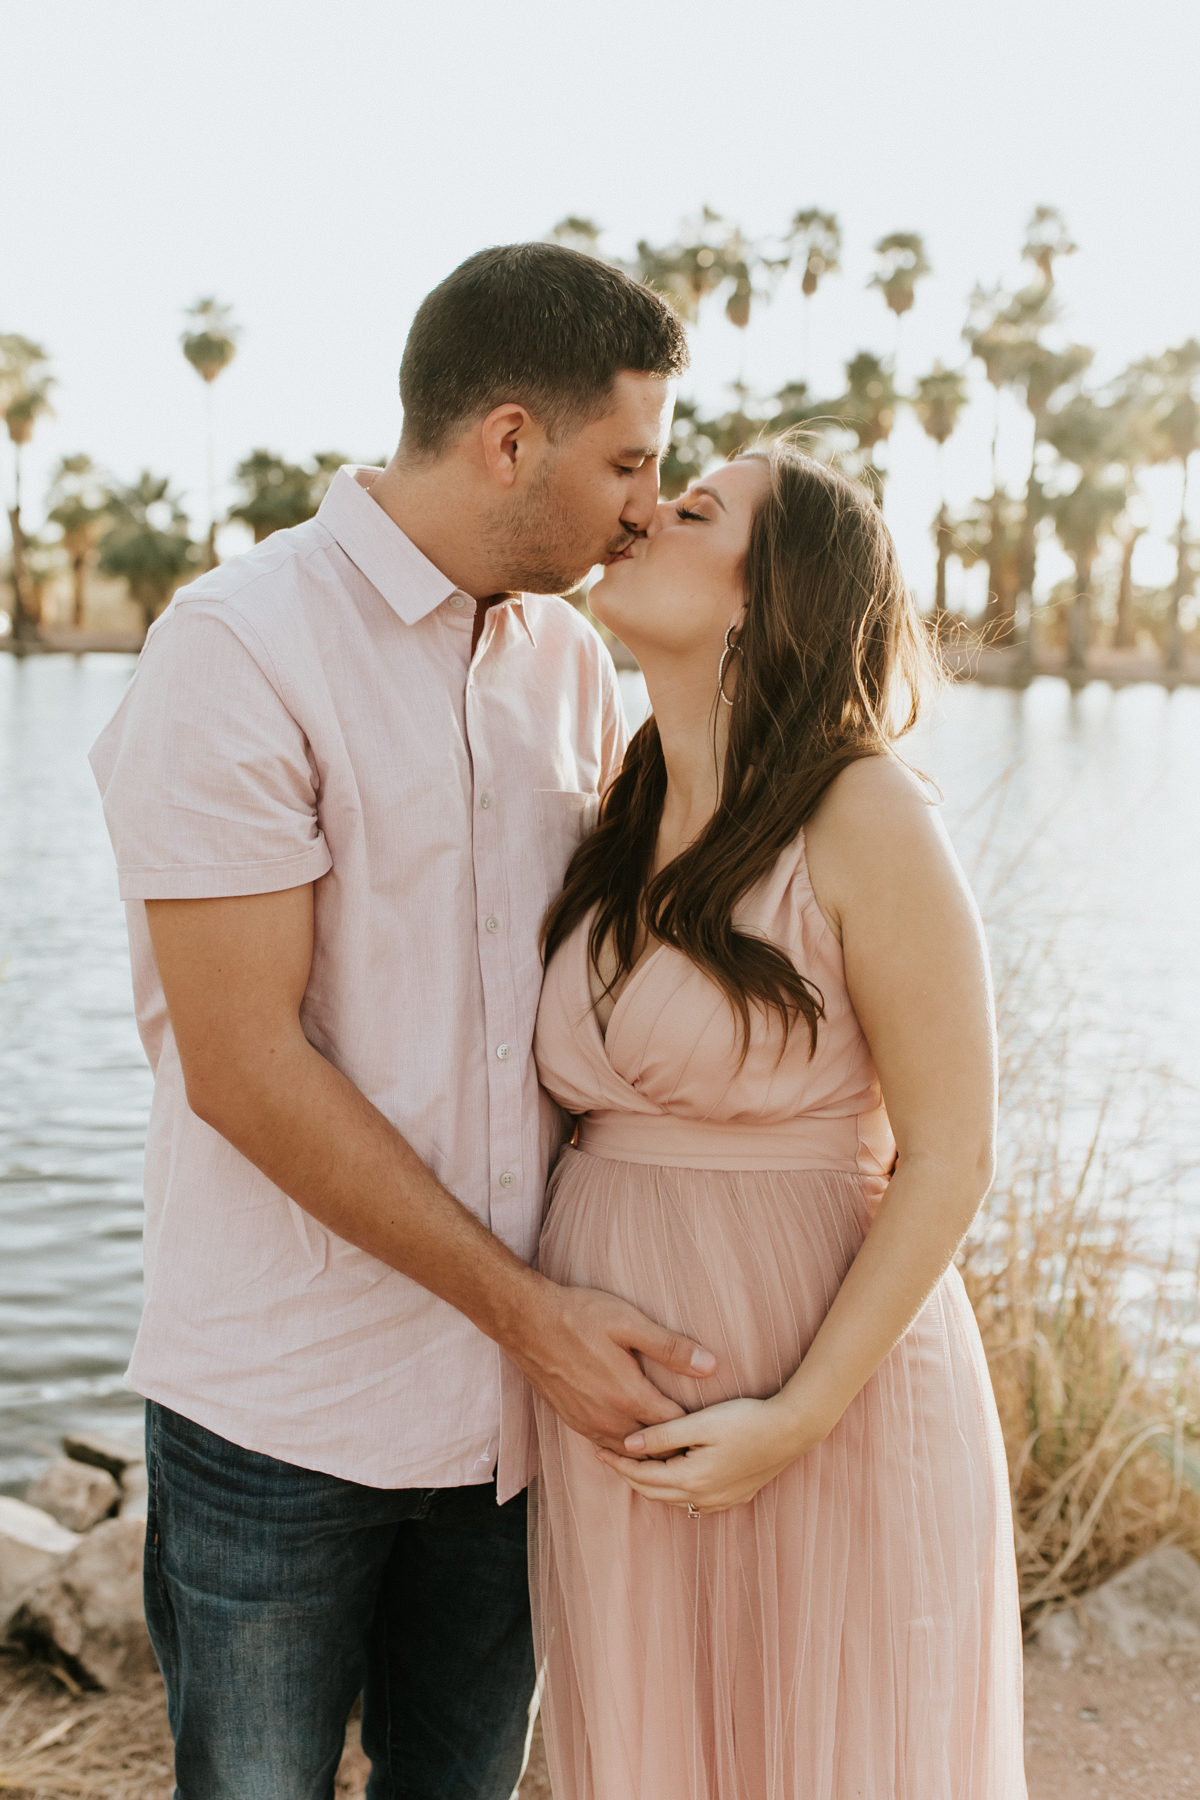 Megan Claire Photography | Phoenix Arizona Maternity Photographer. Arizona maternity photoshoot surrounded by palm trees, desert, and water. Pink maternity dress, white sheer maternity dress @meganclairephoto